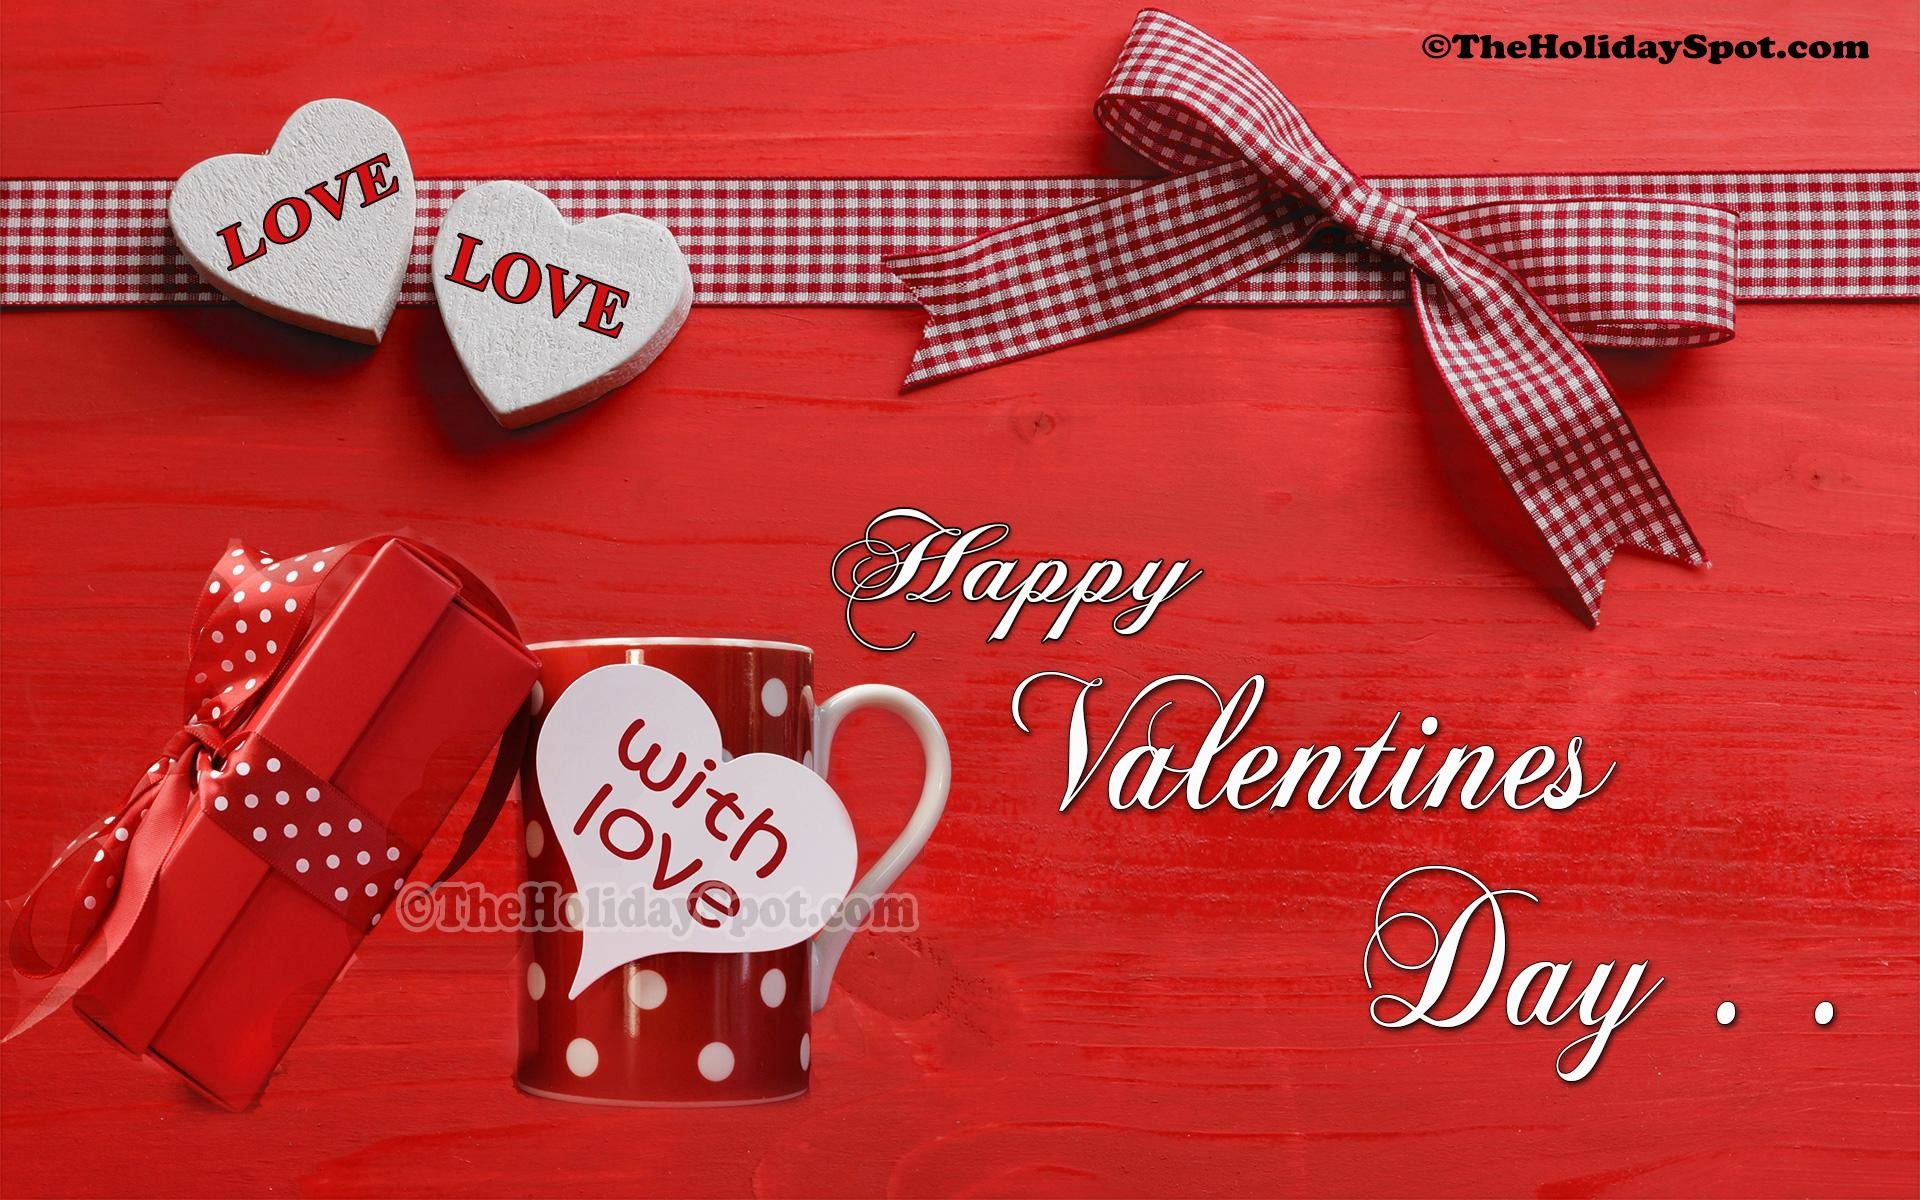 Valentines-Day-Images-for-desktop-and-mobile-ipad-